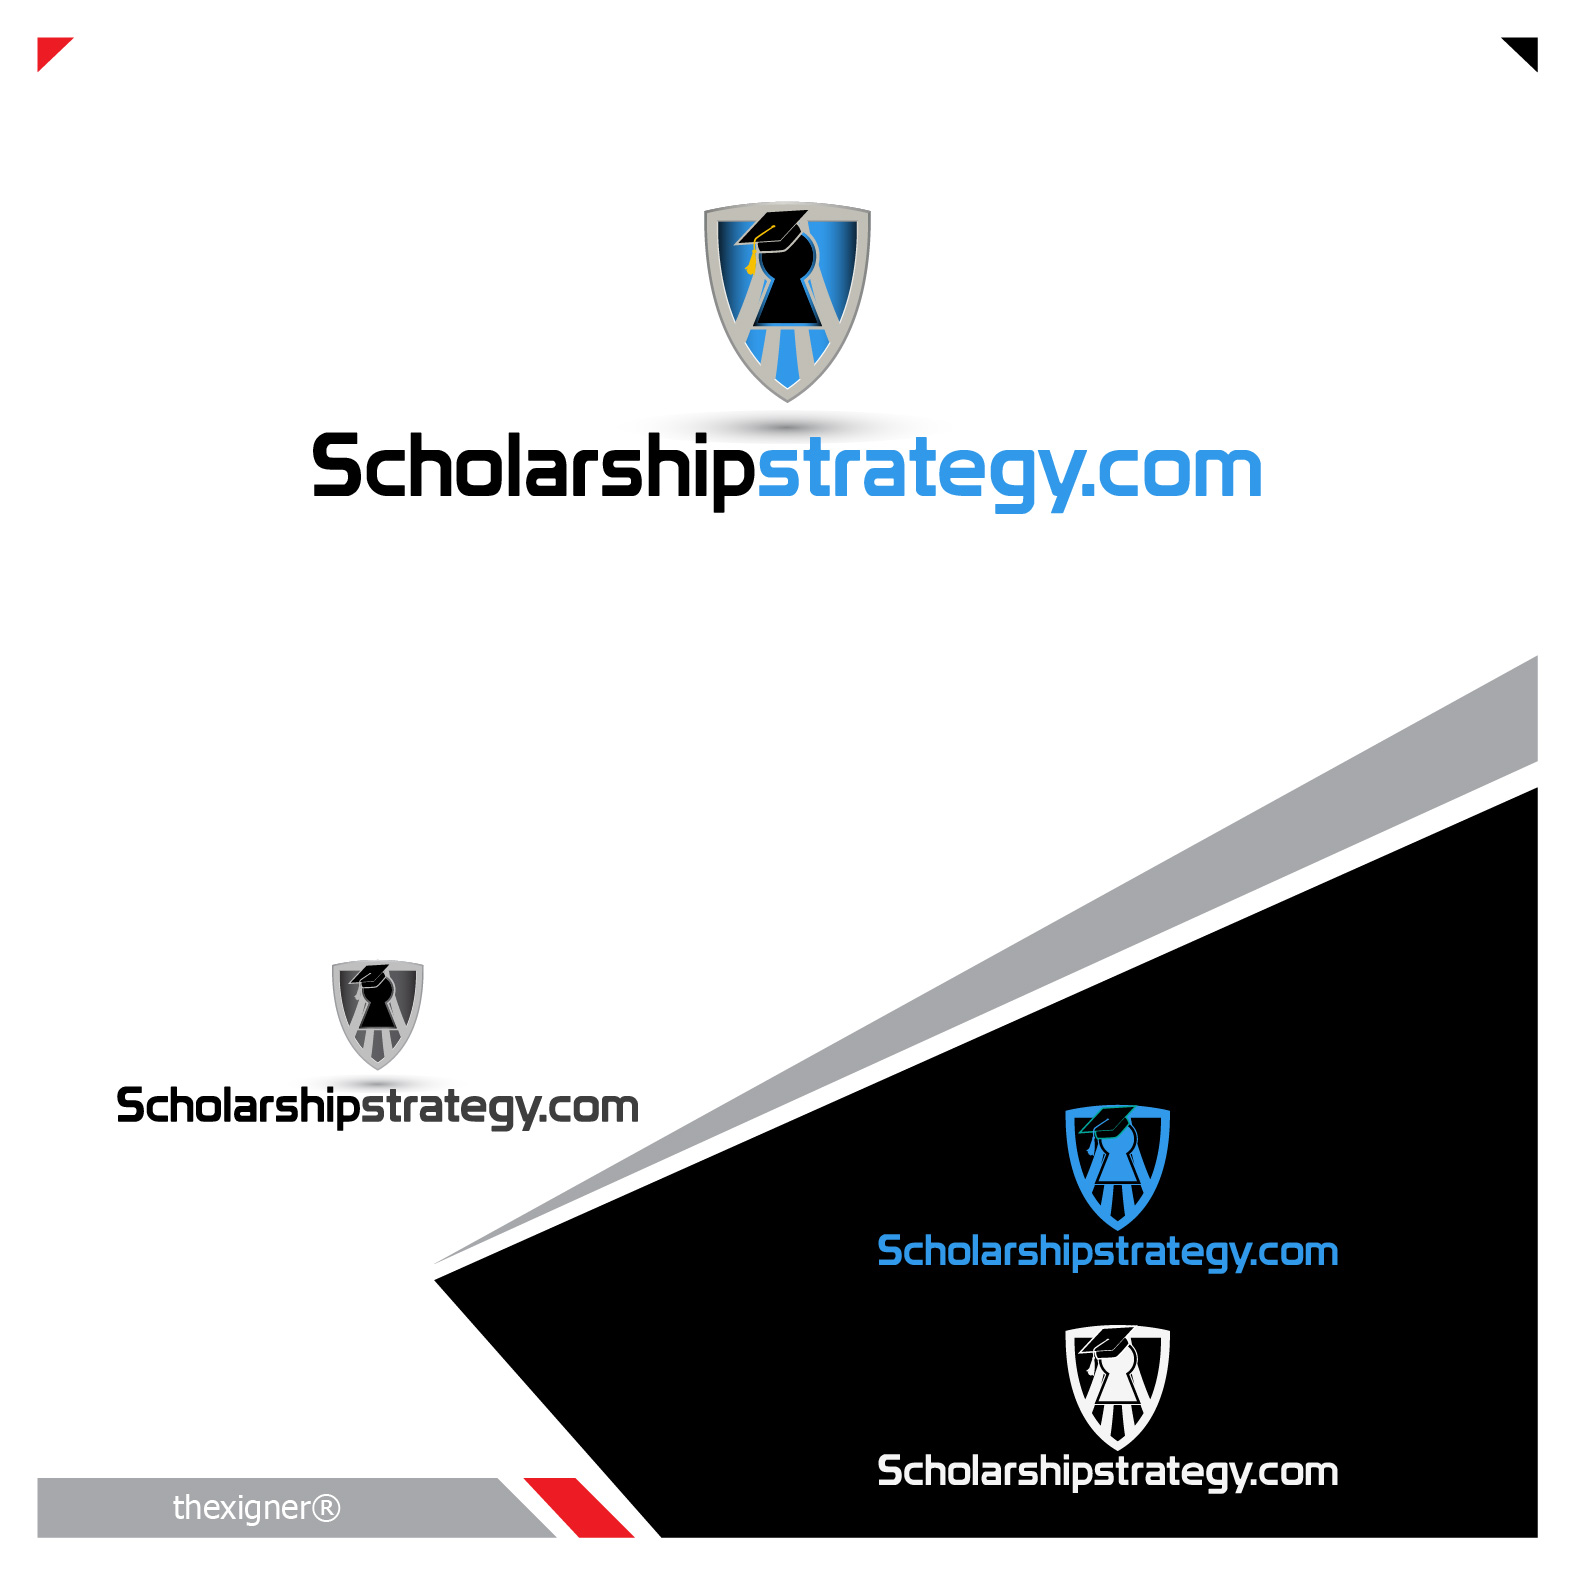 Logo Design by lagalag - Entry No. 100 in the Logo Design Contest Captivating Logo Design for Scholarshipstrategy.com.